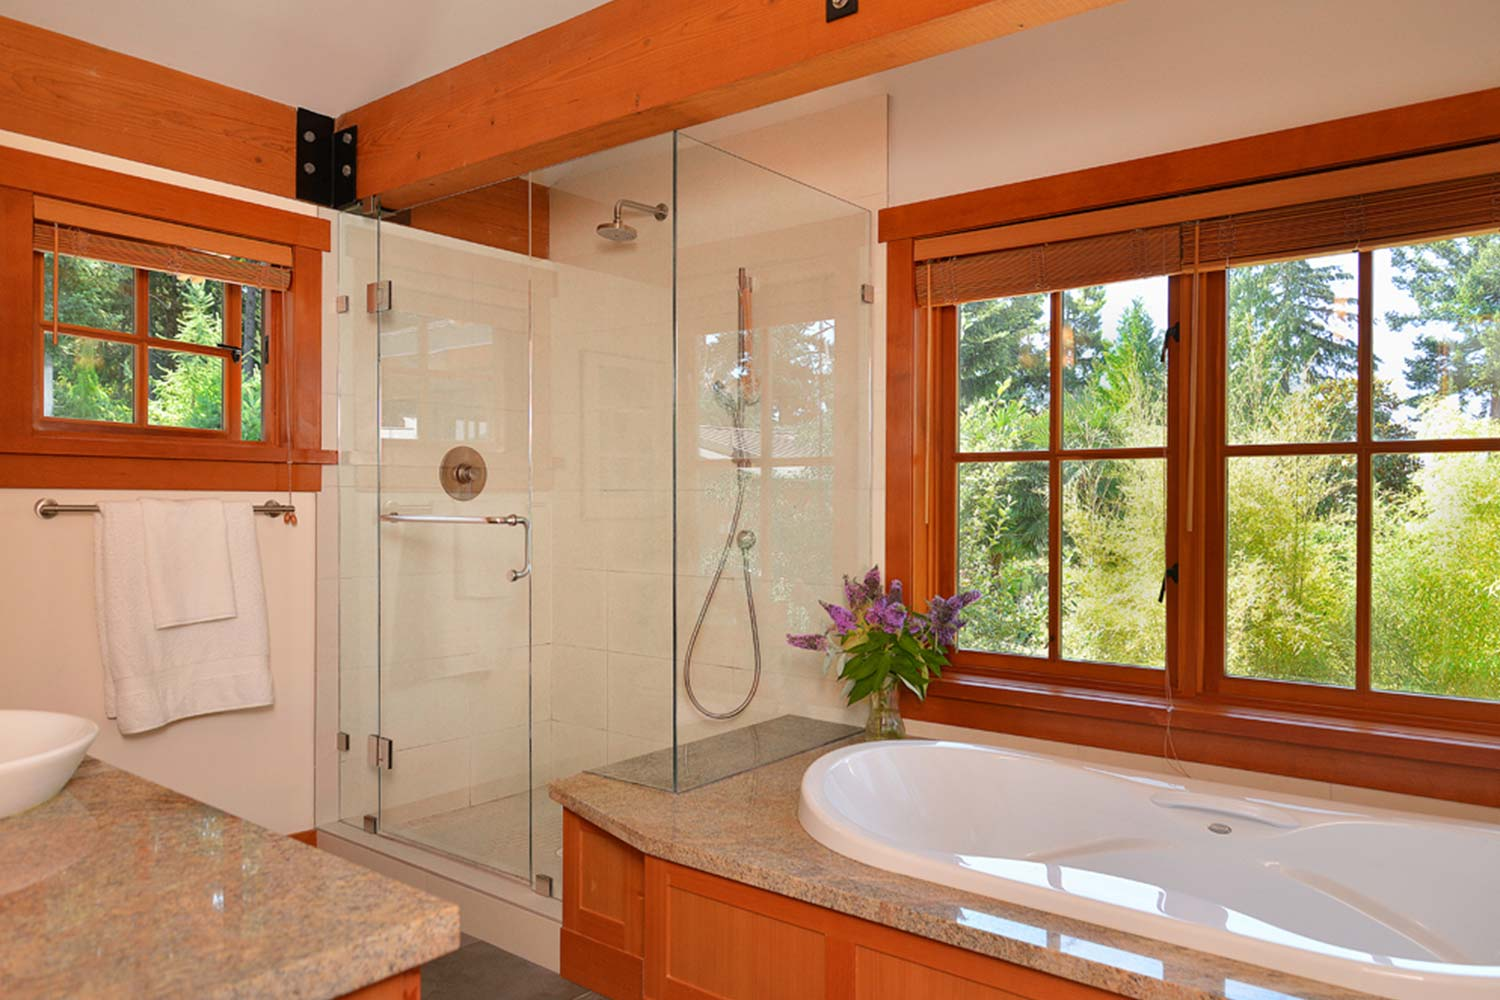 A bathroom in House 65 - a furnished home for rent, features a large bath, a shower, and a view of the surrounding forest.